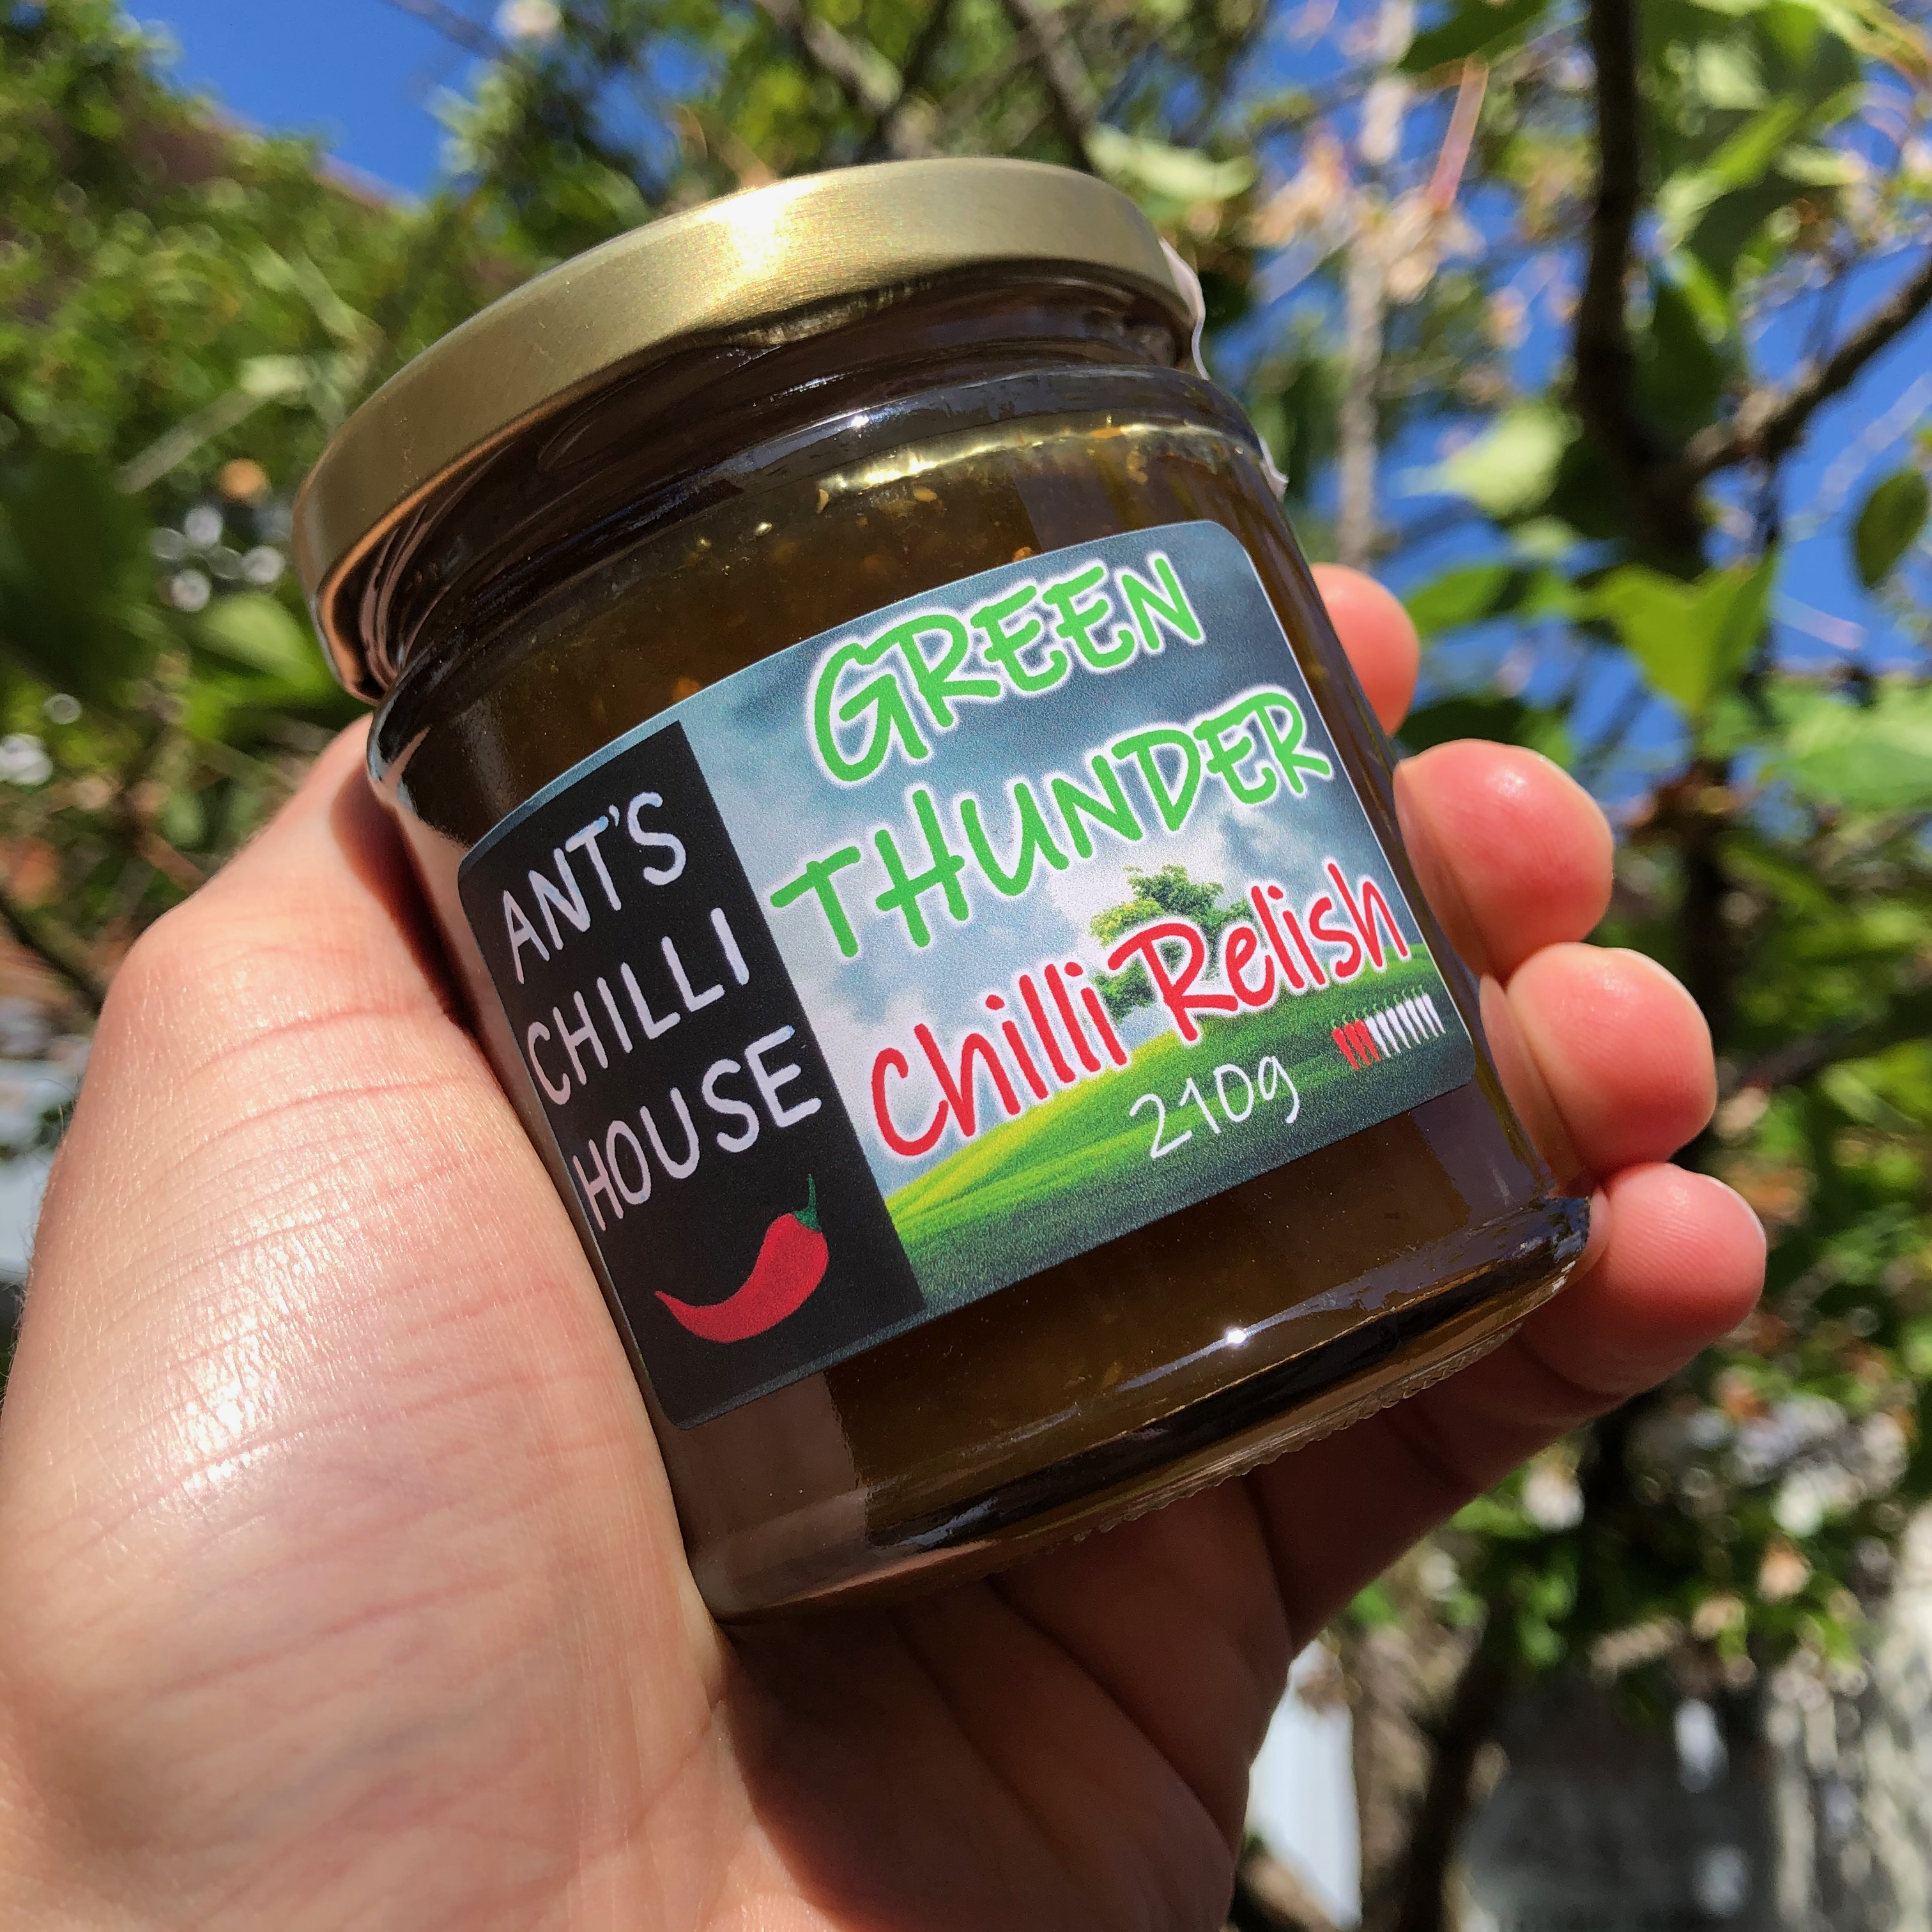 Ants Chilli House - Green Thunder Chilli Relish 210g